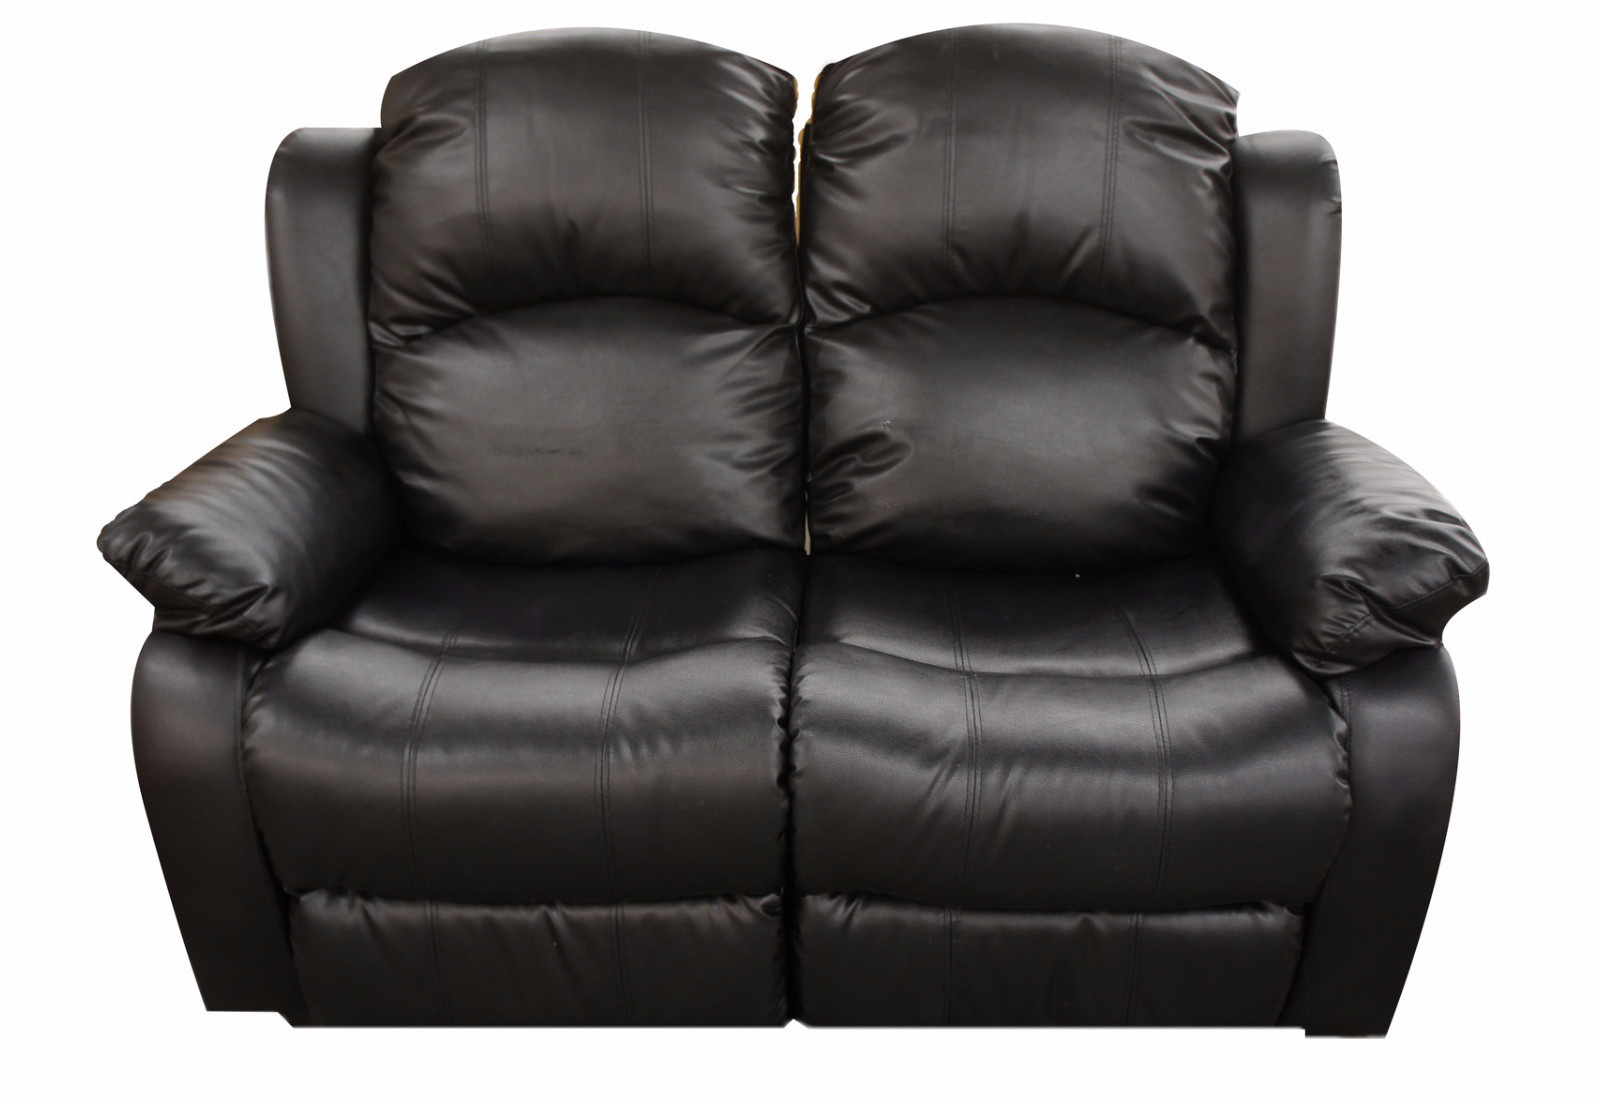 gcss cup holders sale with info loveseat recliners amazon for